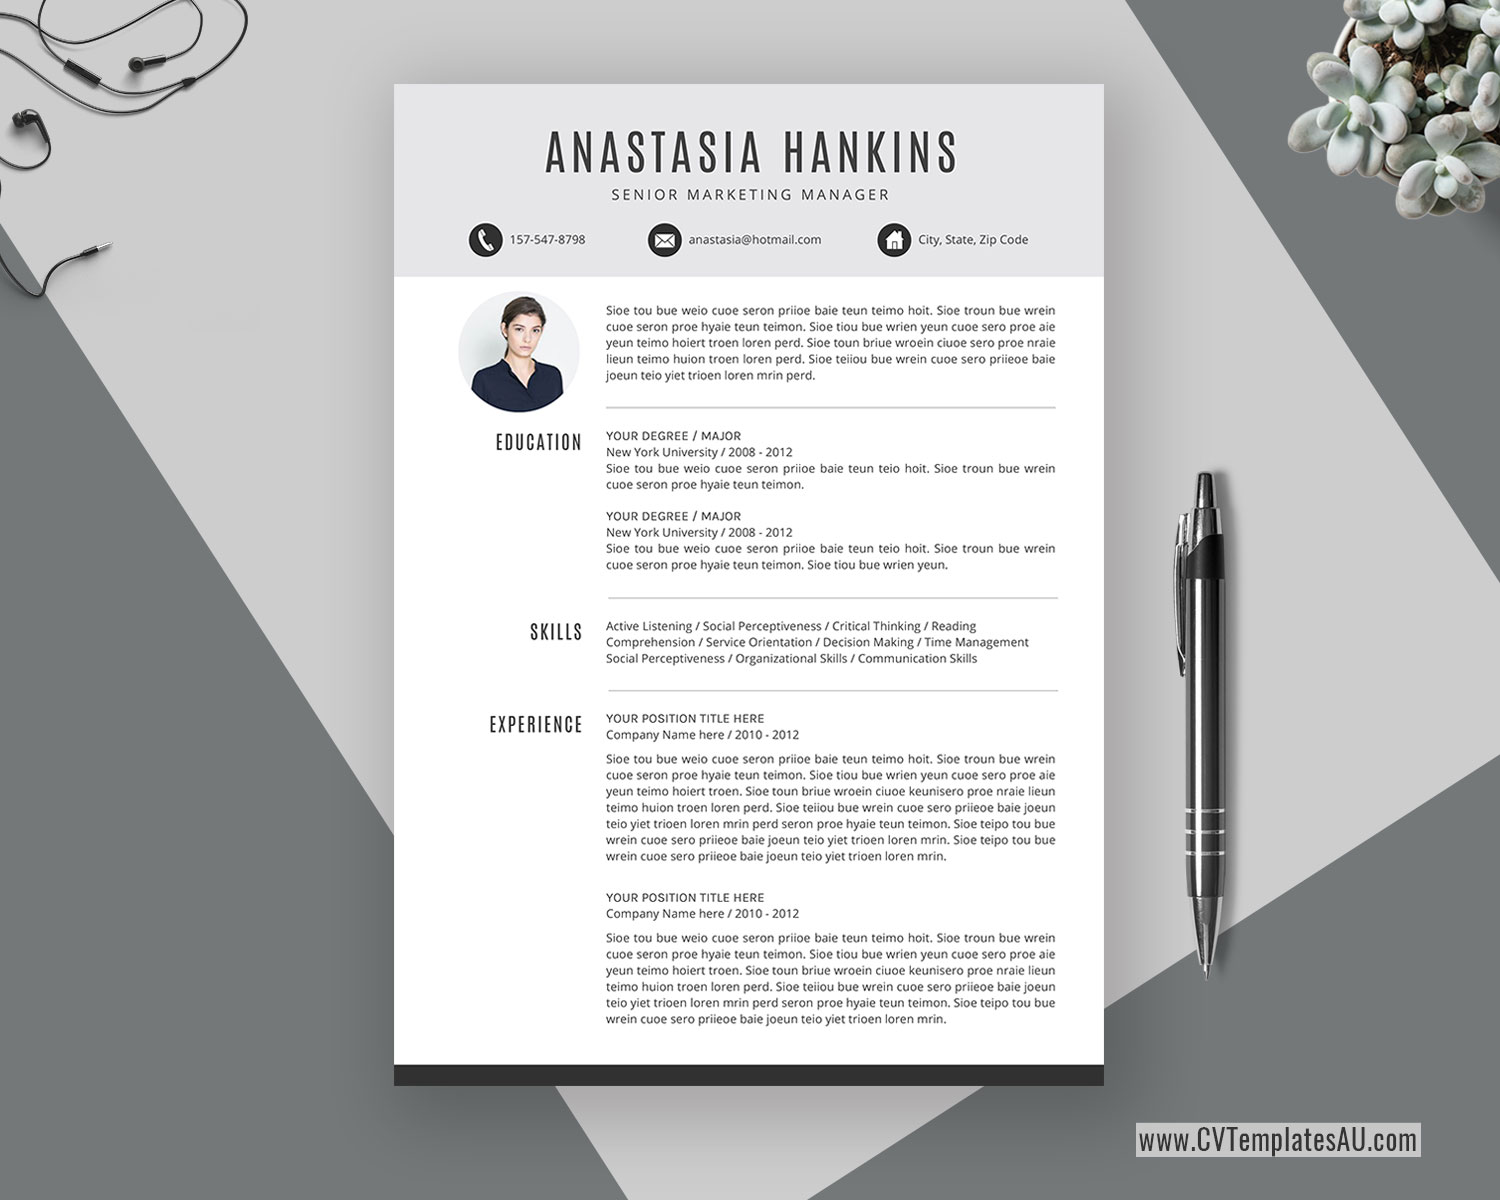 Simple Cv Template For Microsoft Word Cover Letter Clean Cv Format Professional Resume Modern Resume Editable Resume Student Resume 1 3 Page Instant Download Cvtemplatesau Com